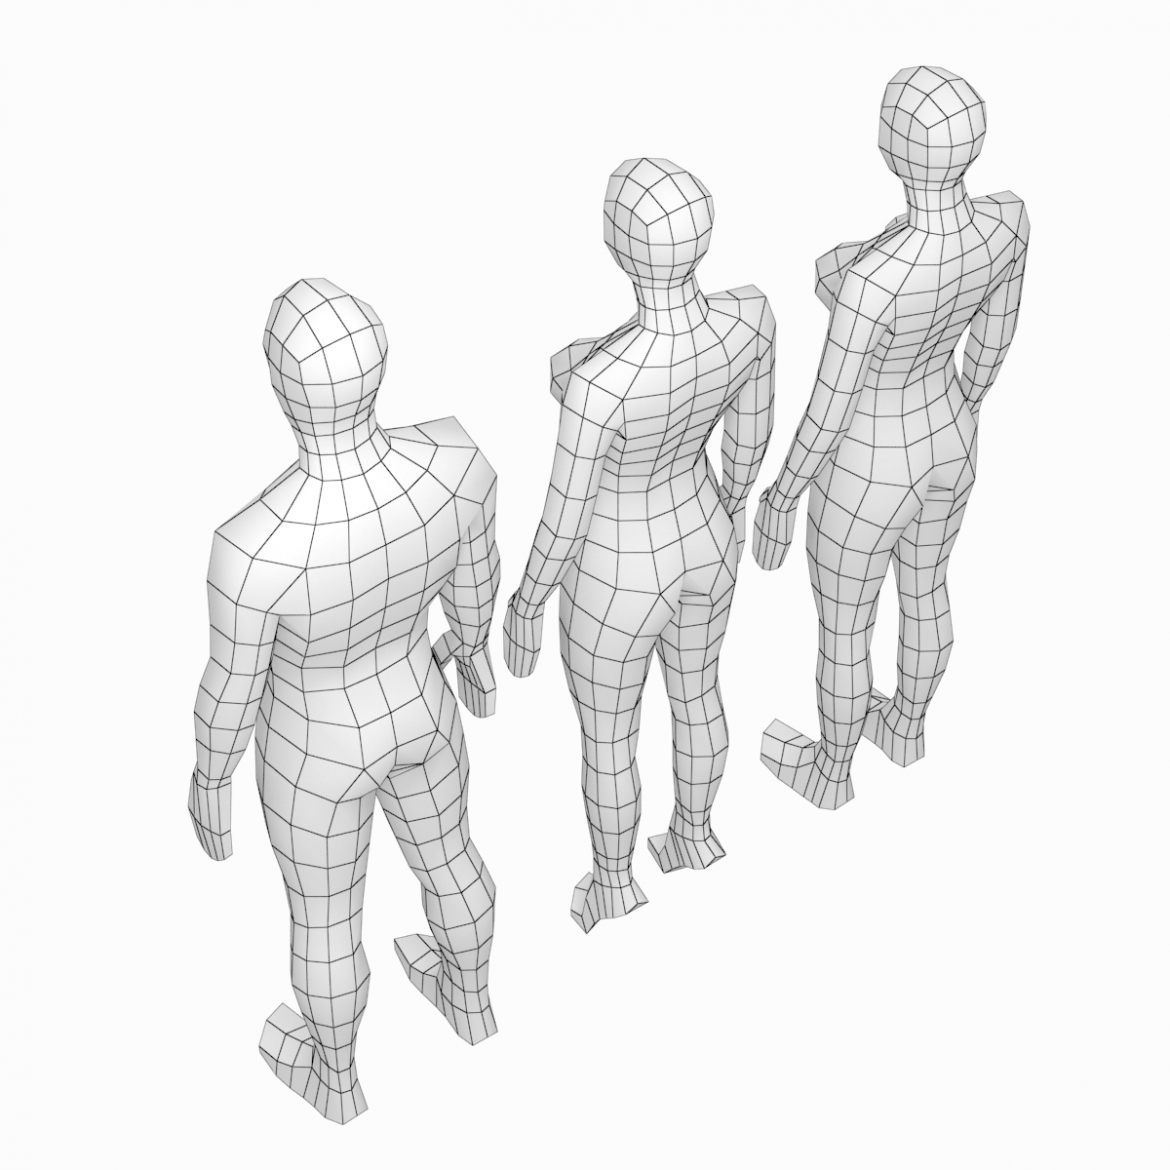 male and female low poly base mesh in rest pose 3d model 3ds max fbx c4d ma mb obj 301237